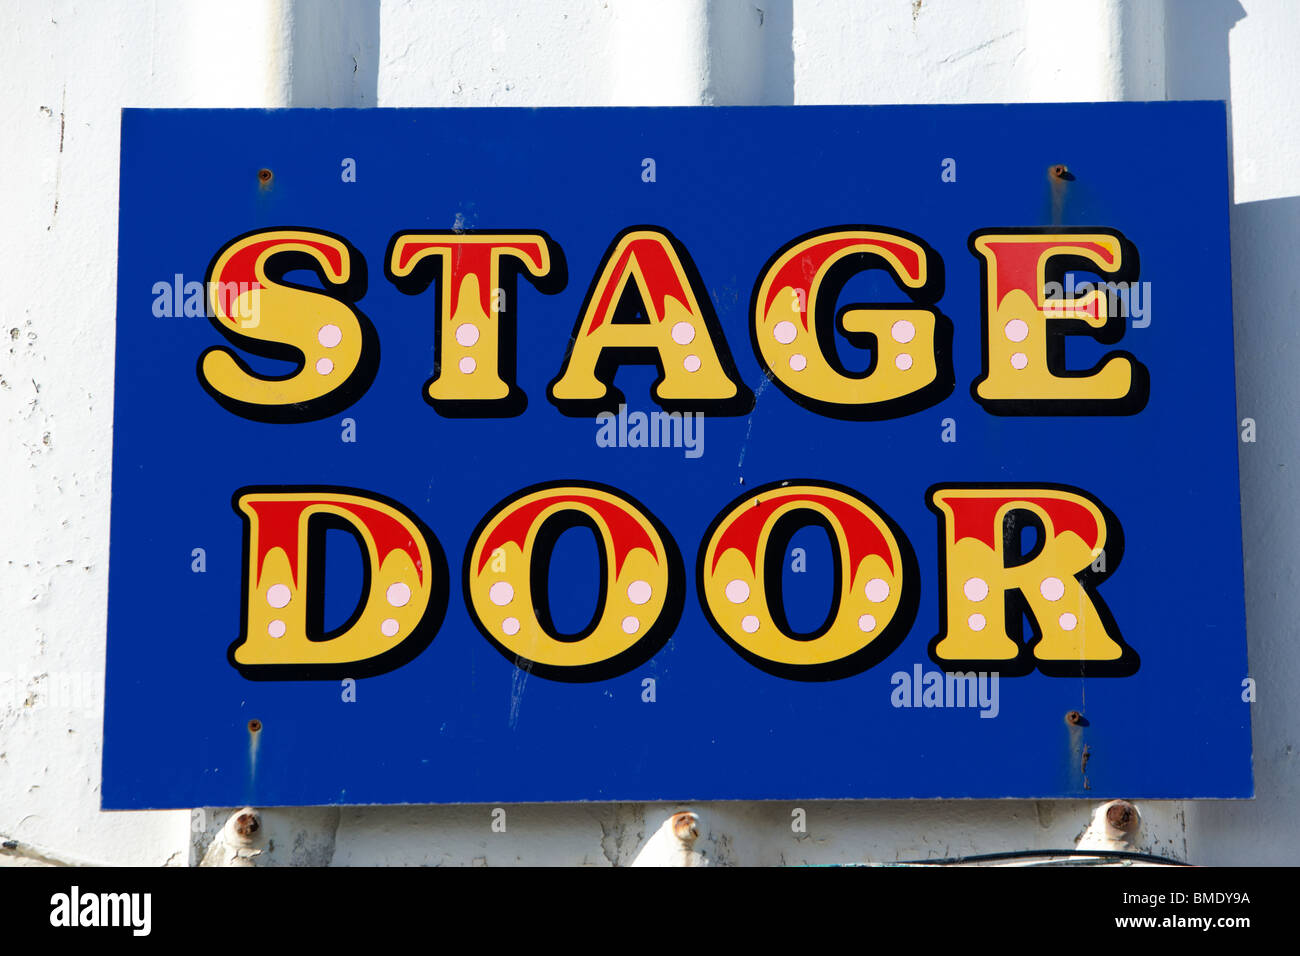 theatrical stage door sign on the outside of a theatre - Stock Image